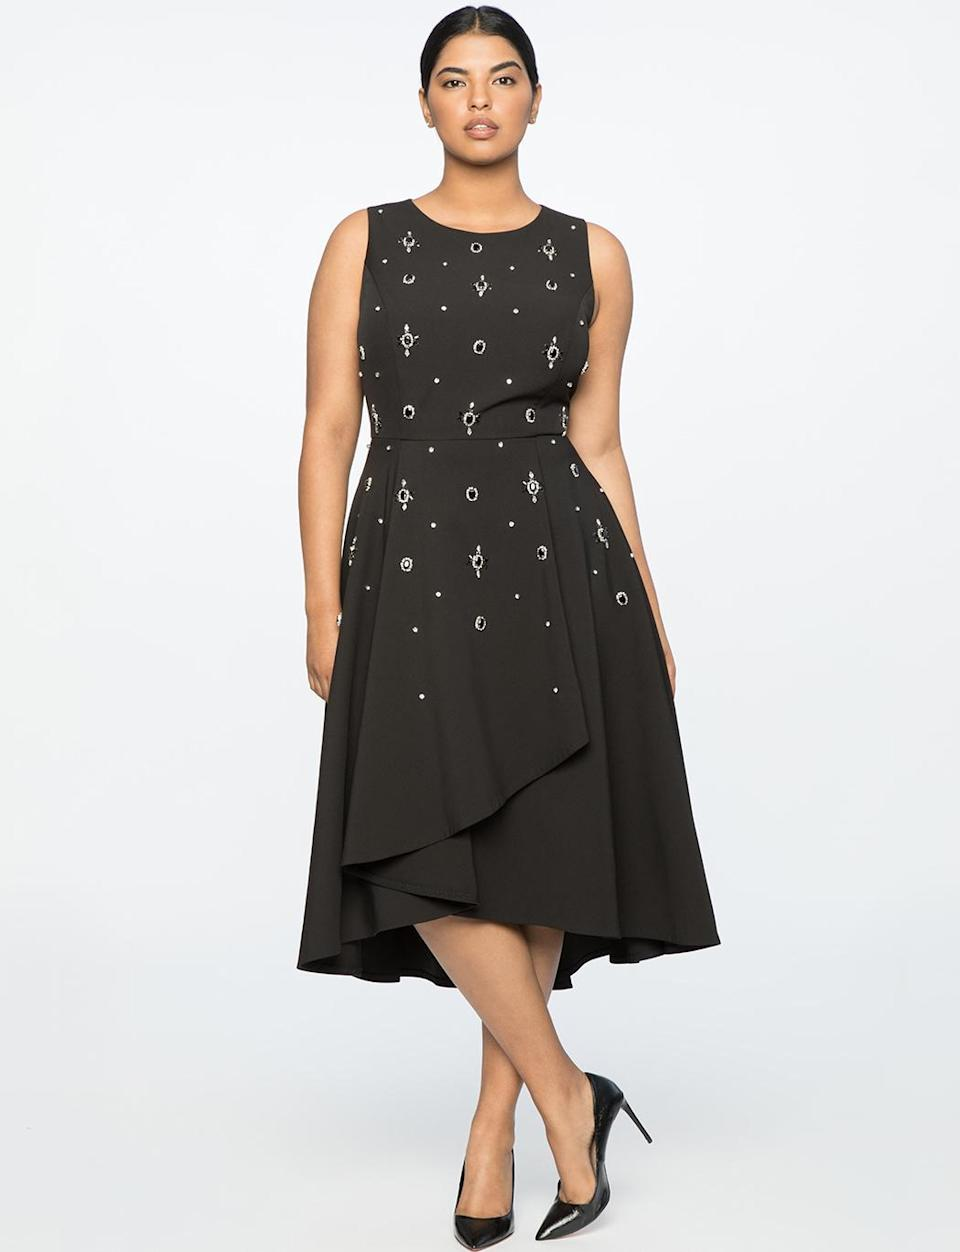 """<p>If you always have trouble finding a dress to wear at your office holiday party, this dress checks all the boxes and won't disappoint. It features a conservative neckline, a feminine flare midi-length hem, and tiny crystal embellishments that will get you in the holiday spirit. We suggest adding a faux-fur stole and chandalier earrings to complete the outfit.<br>Crepe-embellished fit-and-flare dress, $190, <a rel=""""nofollow noopener"""" href=""""https://fave.co/2qjnHHg"""" target=""""_blank"""" data-ylk=""""slk:eloquii.com"""" class=""""link rapid-noclick-resp"""">eloquii.com</a> </p>"""